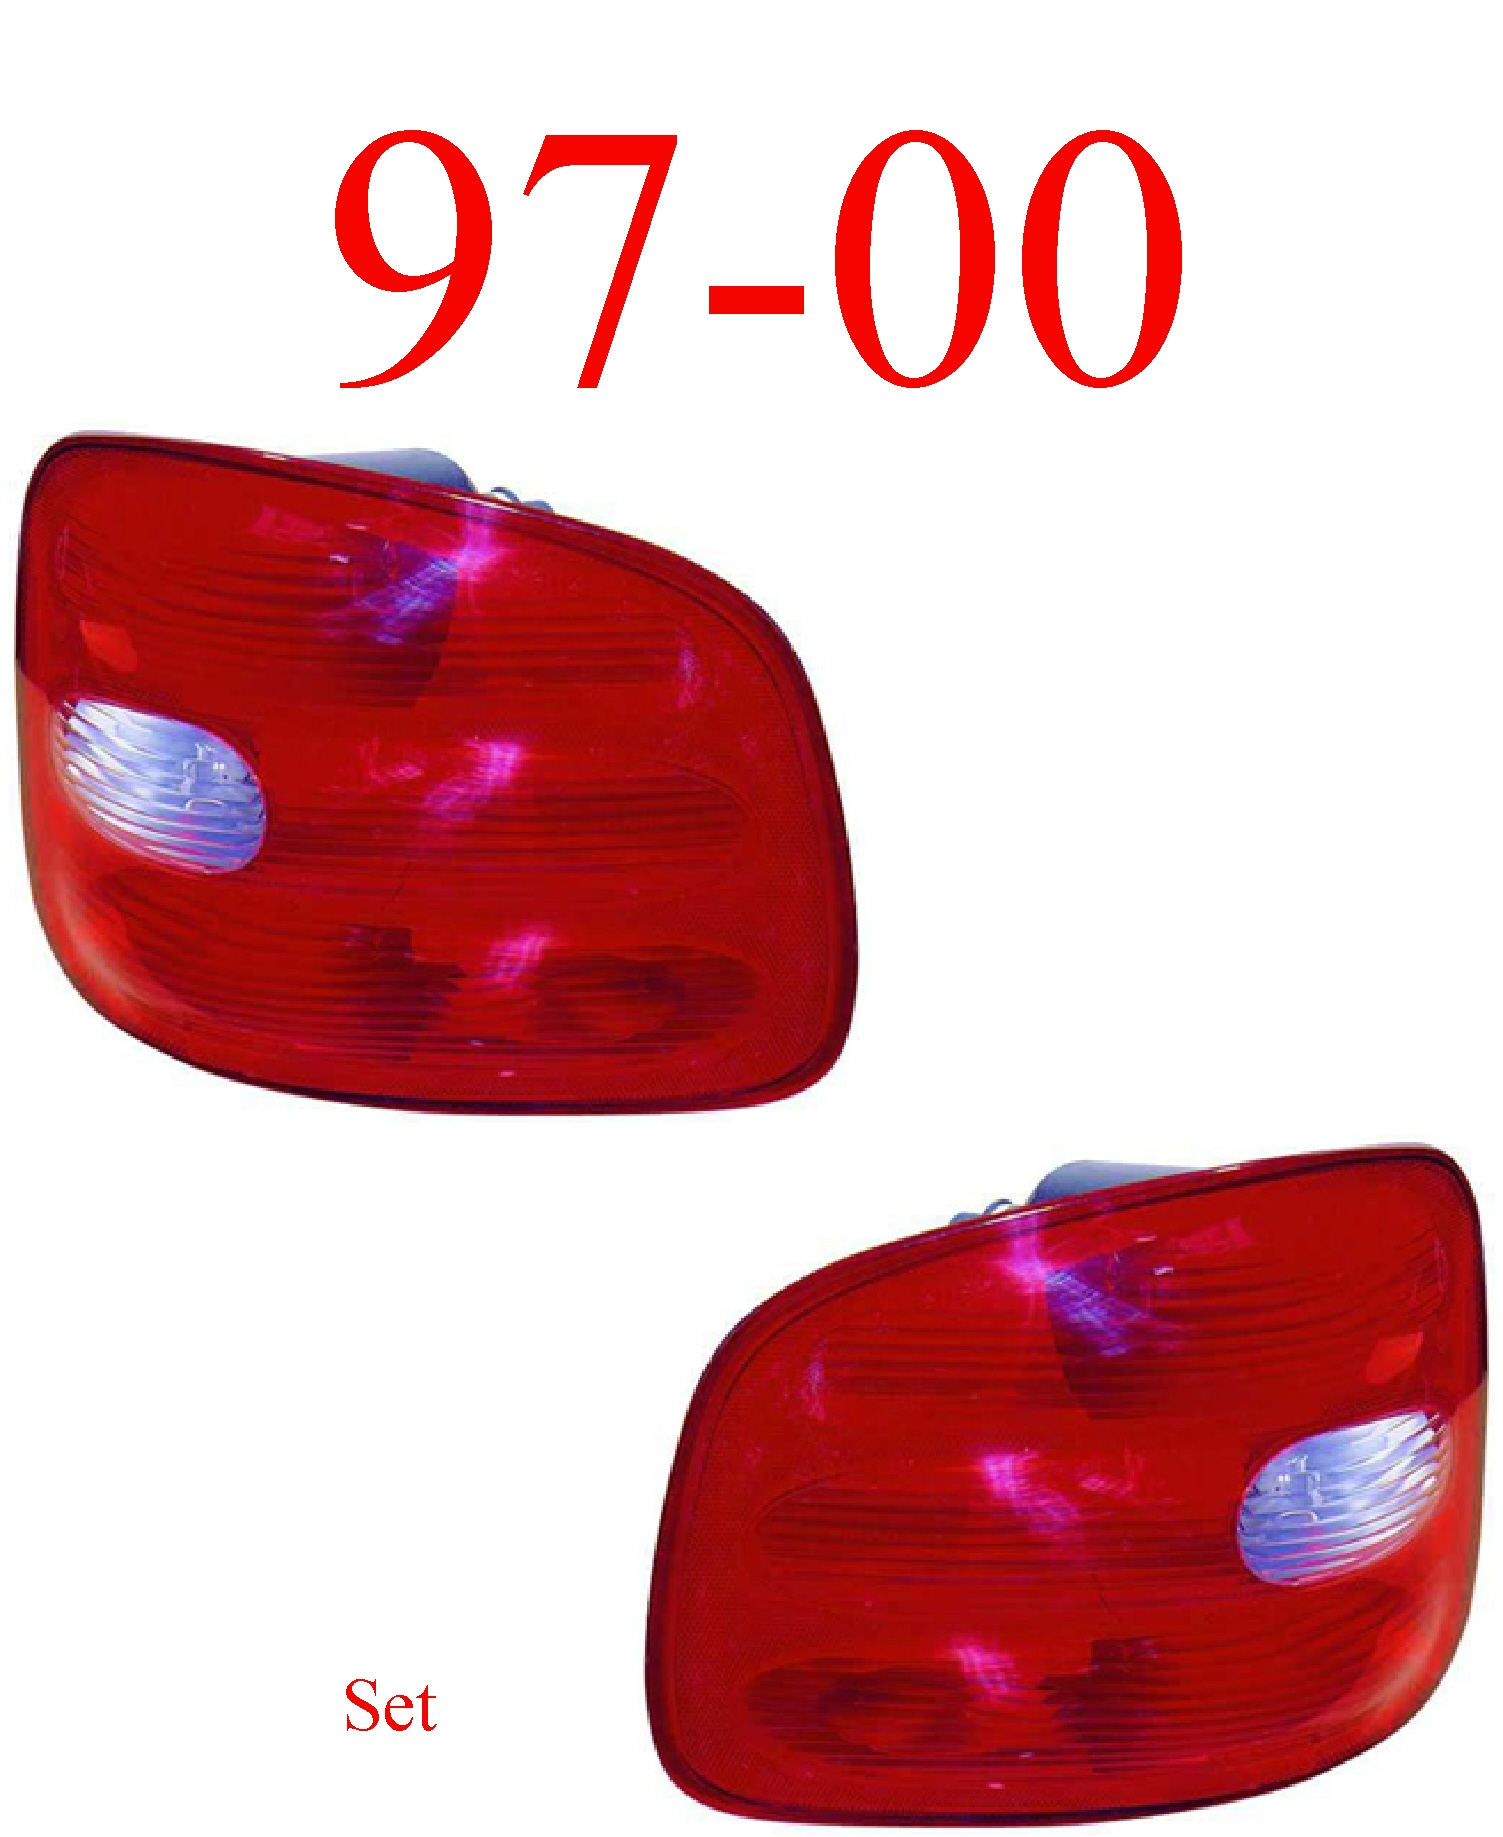 97-00 Ford F150 Flareside Tail Light Set